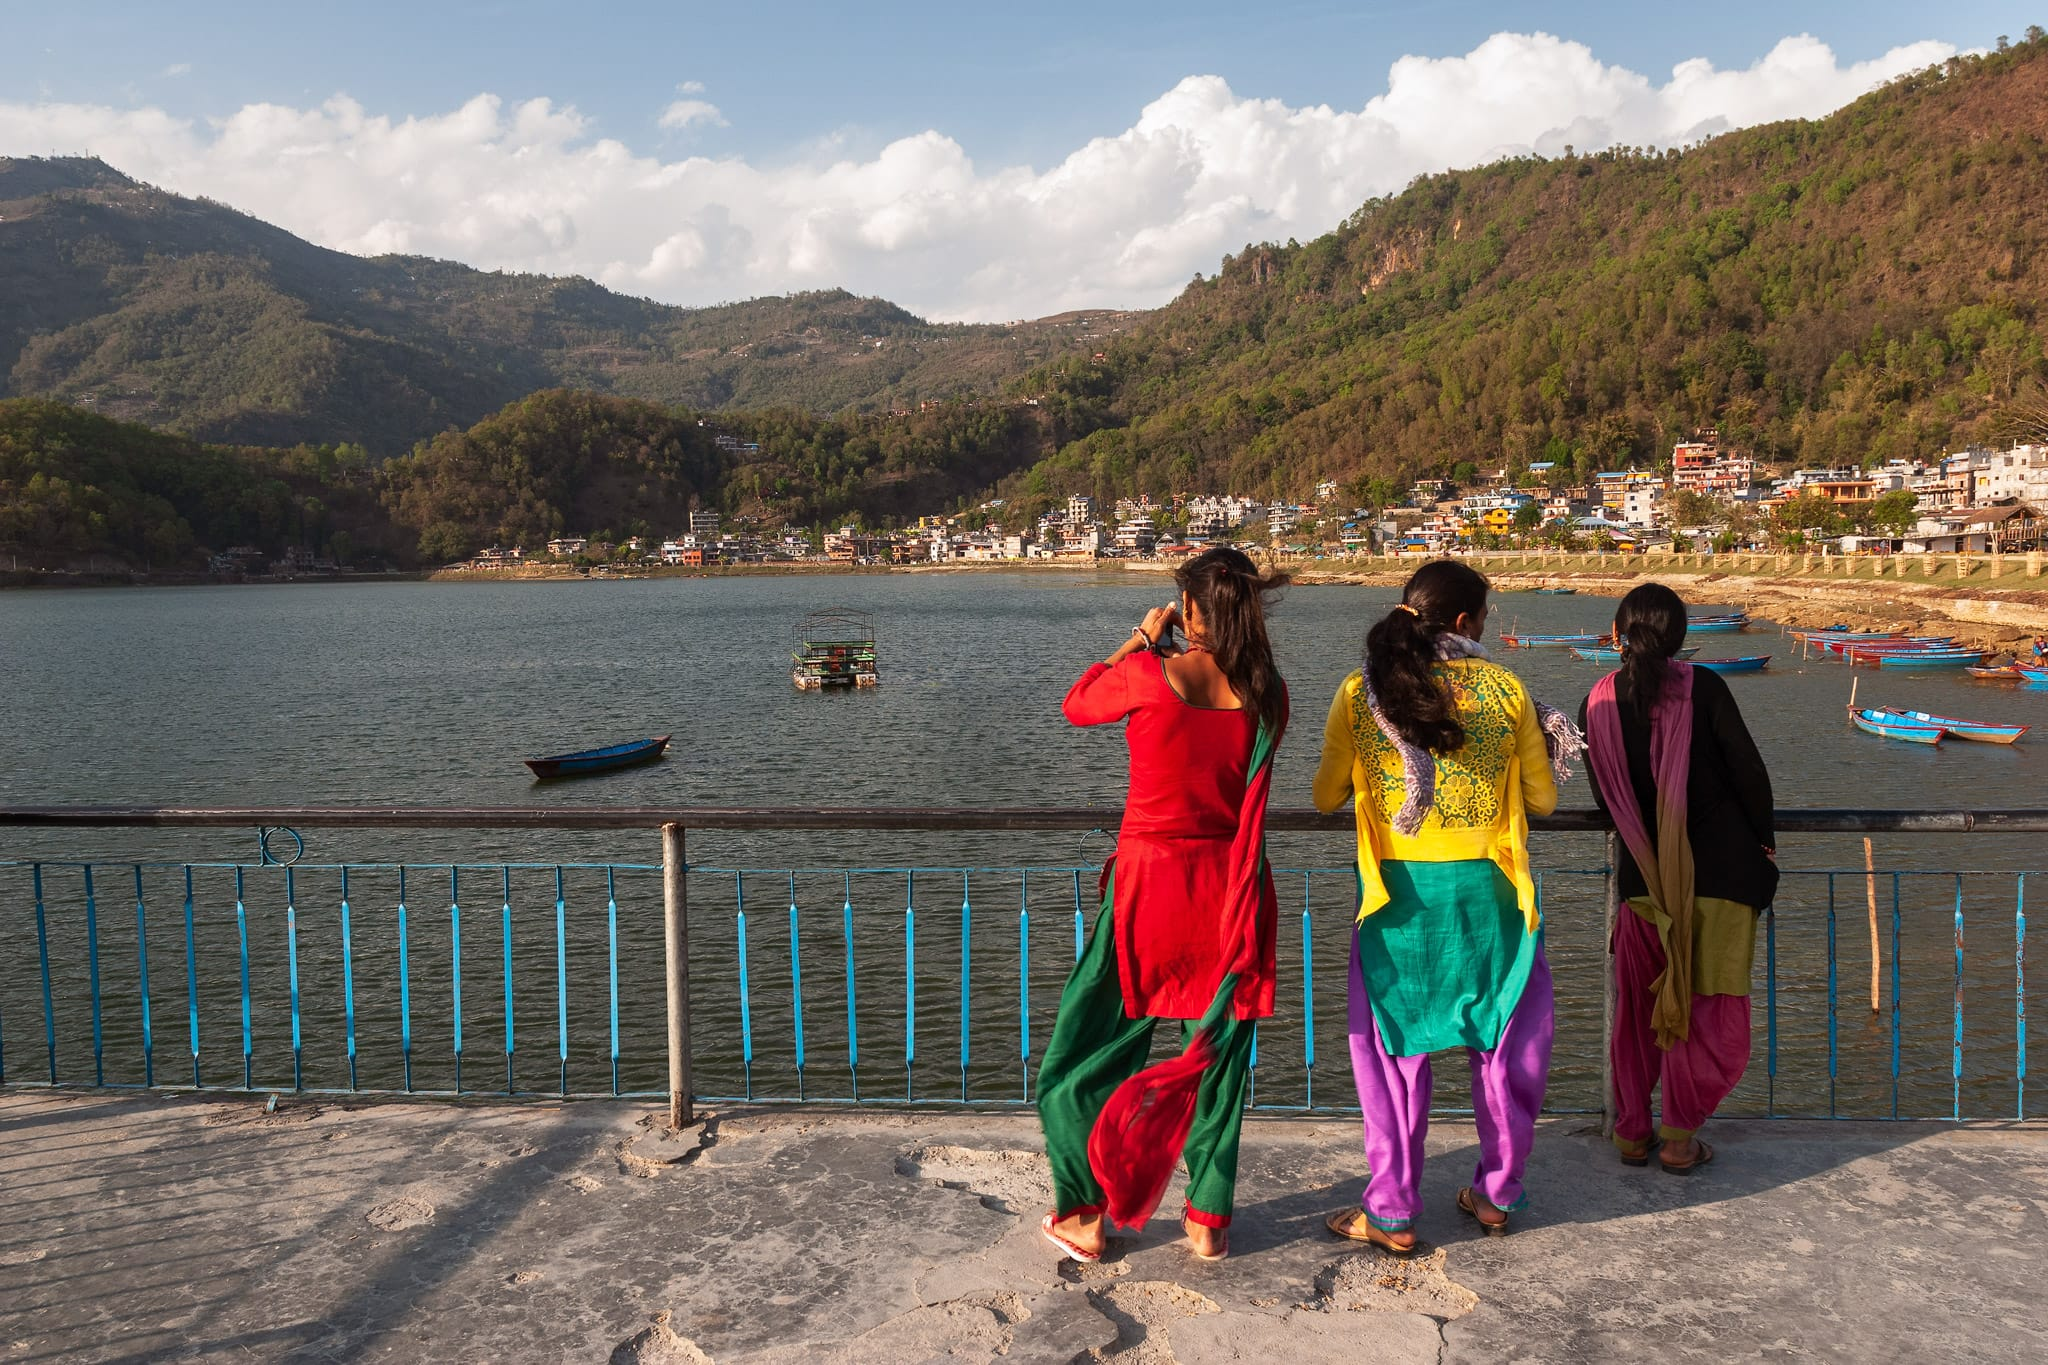 Nepalese women in colourful dresses enjoy the view at the peer on Phewa lake. Pokhara, Nepal.